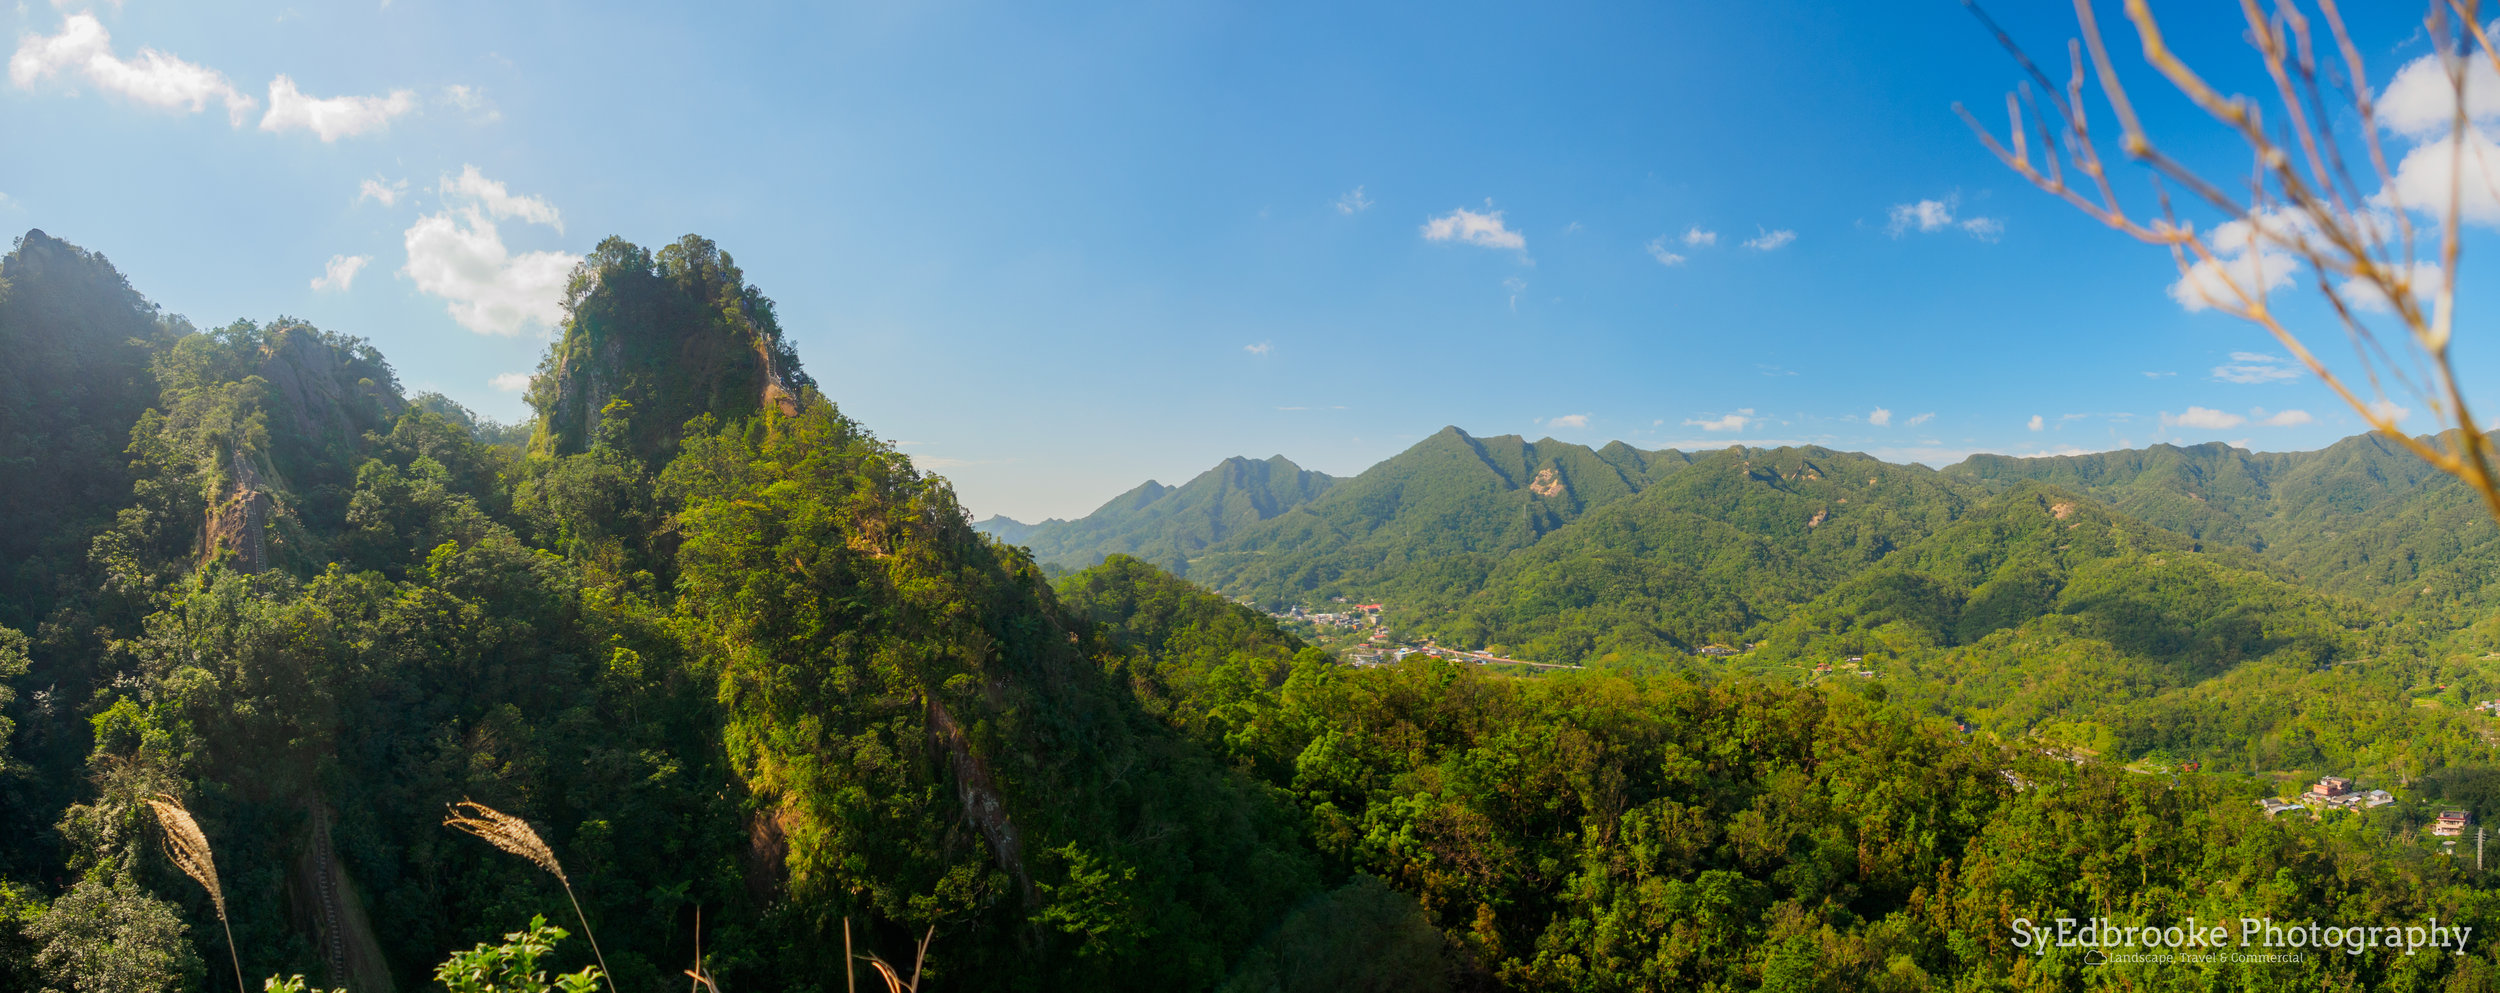 the two peaks as seen from Xiaozi. f3.5 ISO 200, 1/500, 24mm (stitched)